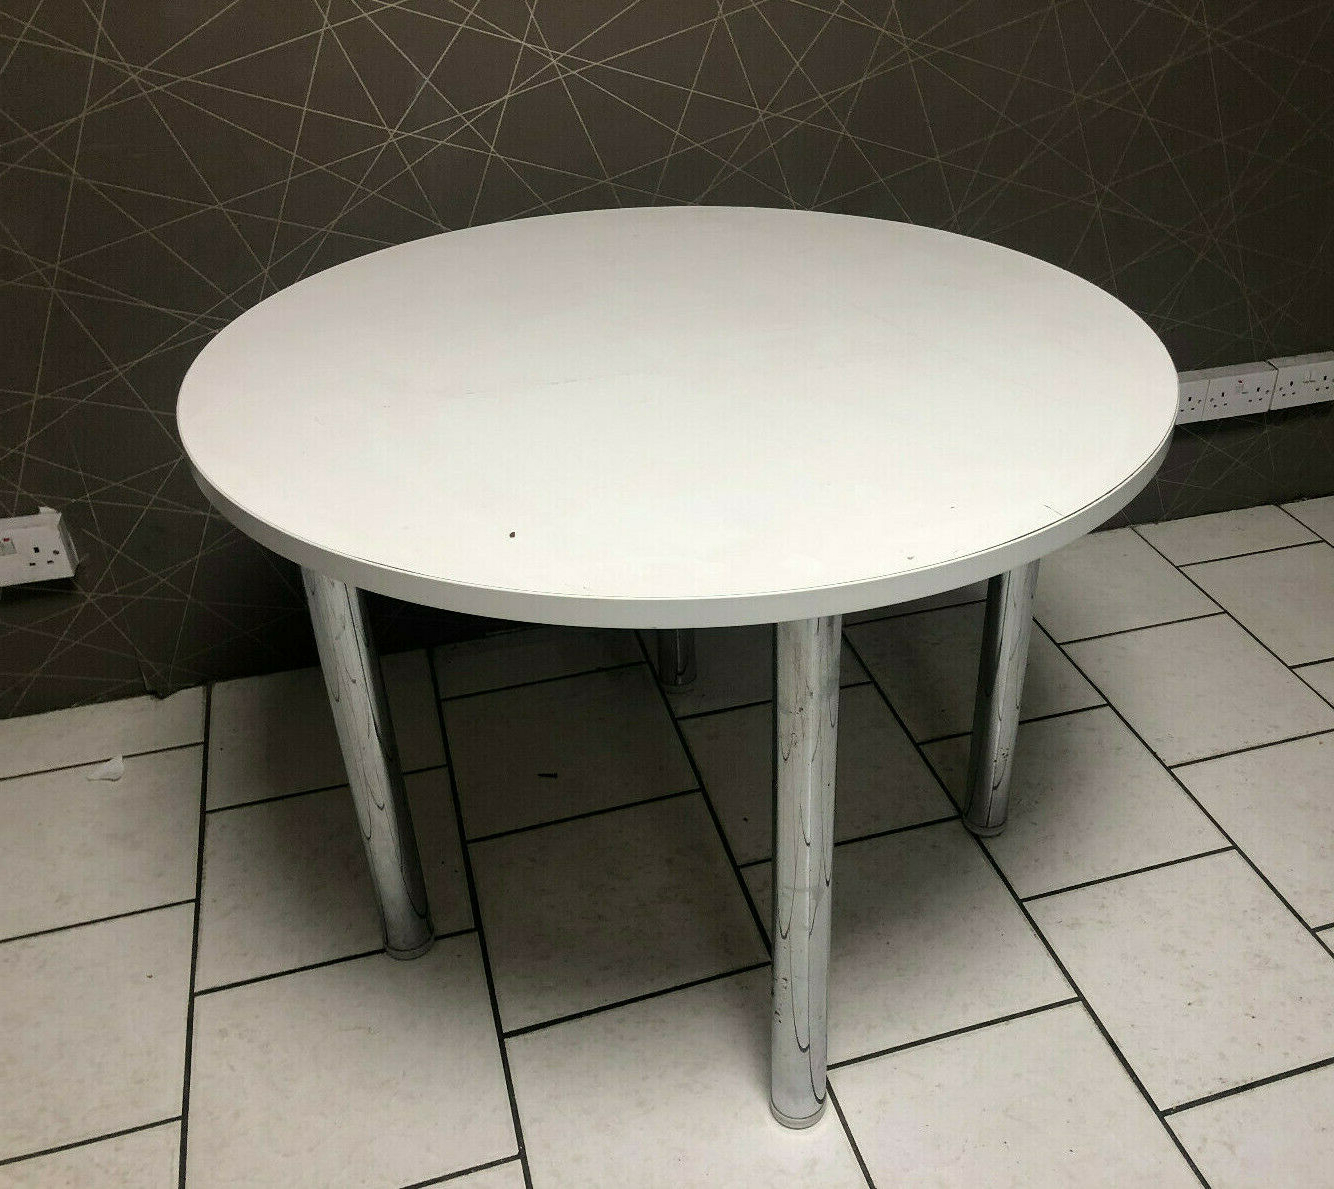 Xd White Round 4 Seater Dining Room Bistro Table Canteen 100Cm Desk Chrome Legs Intended For Fashionable 4 Seater Round Wooden Dining Tables With Chrome Legs (View 18 of 30)